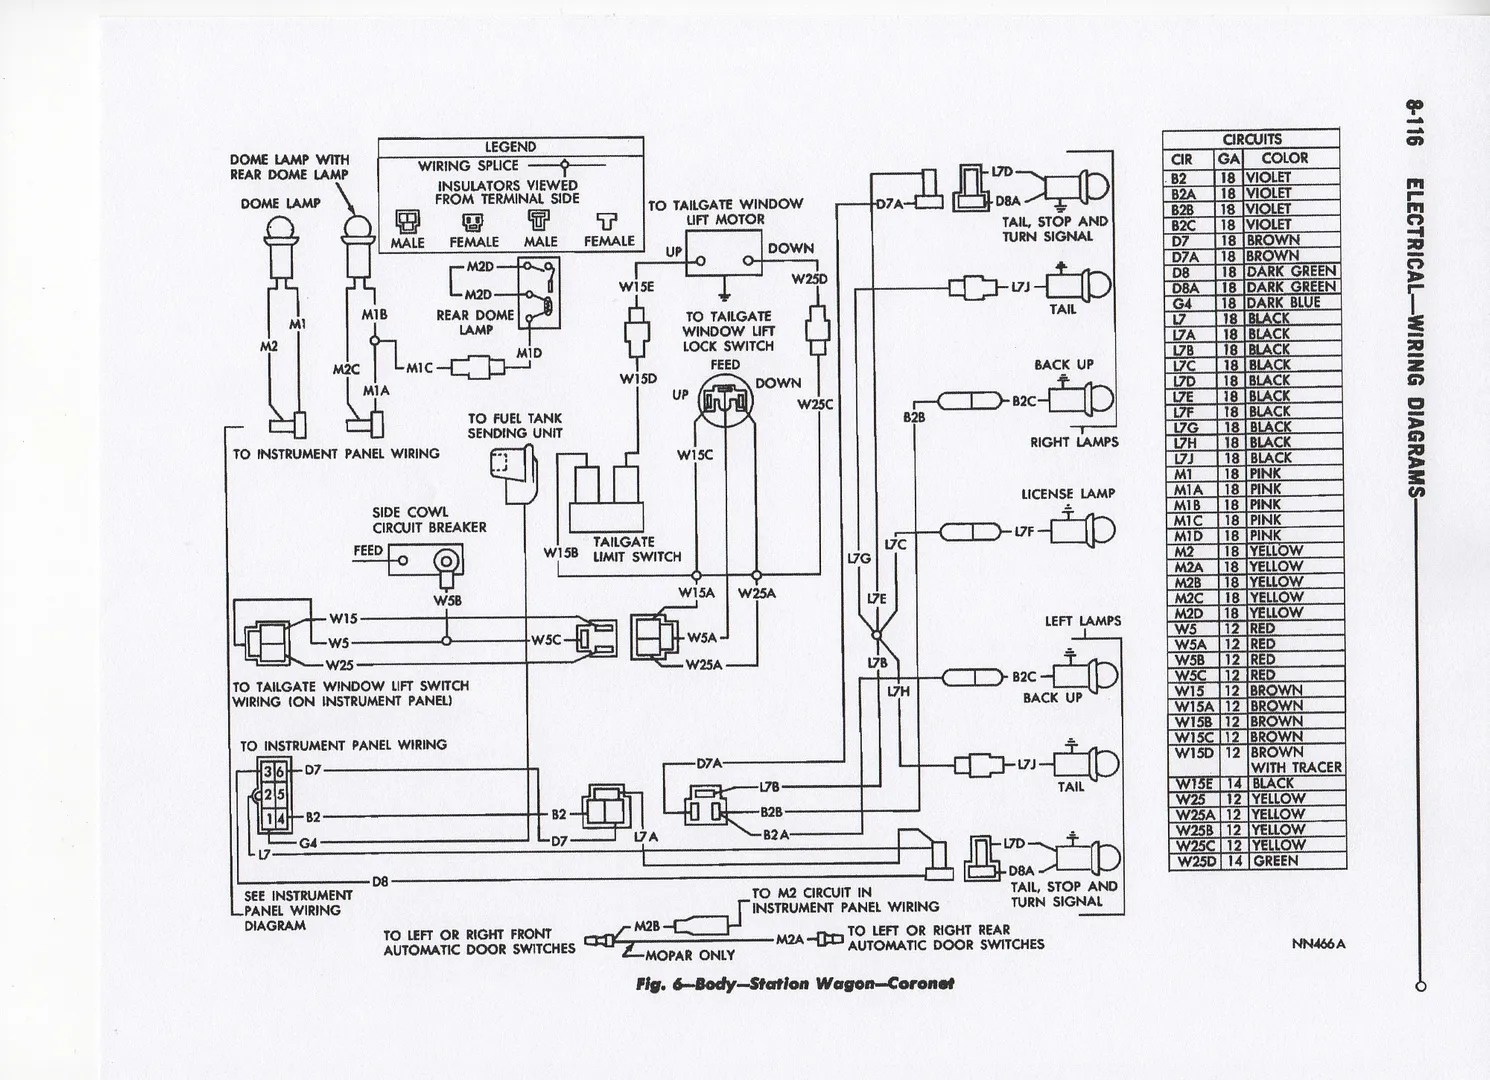 1967 Dodge Dart Wiring Diagram, 1967, Get Free Image About